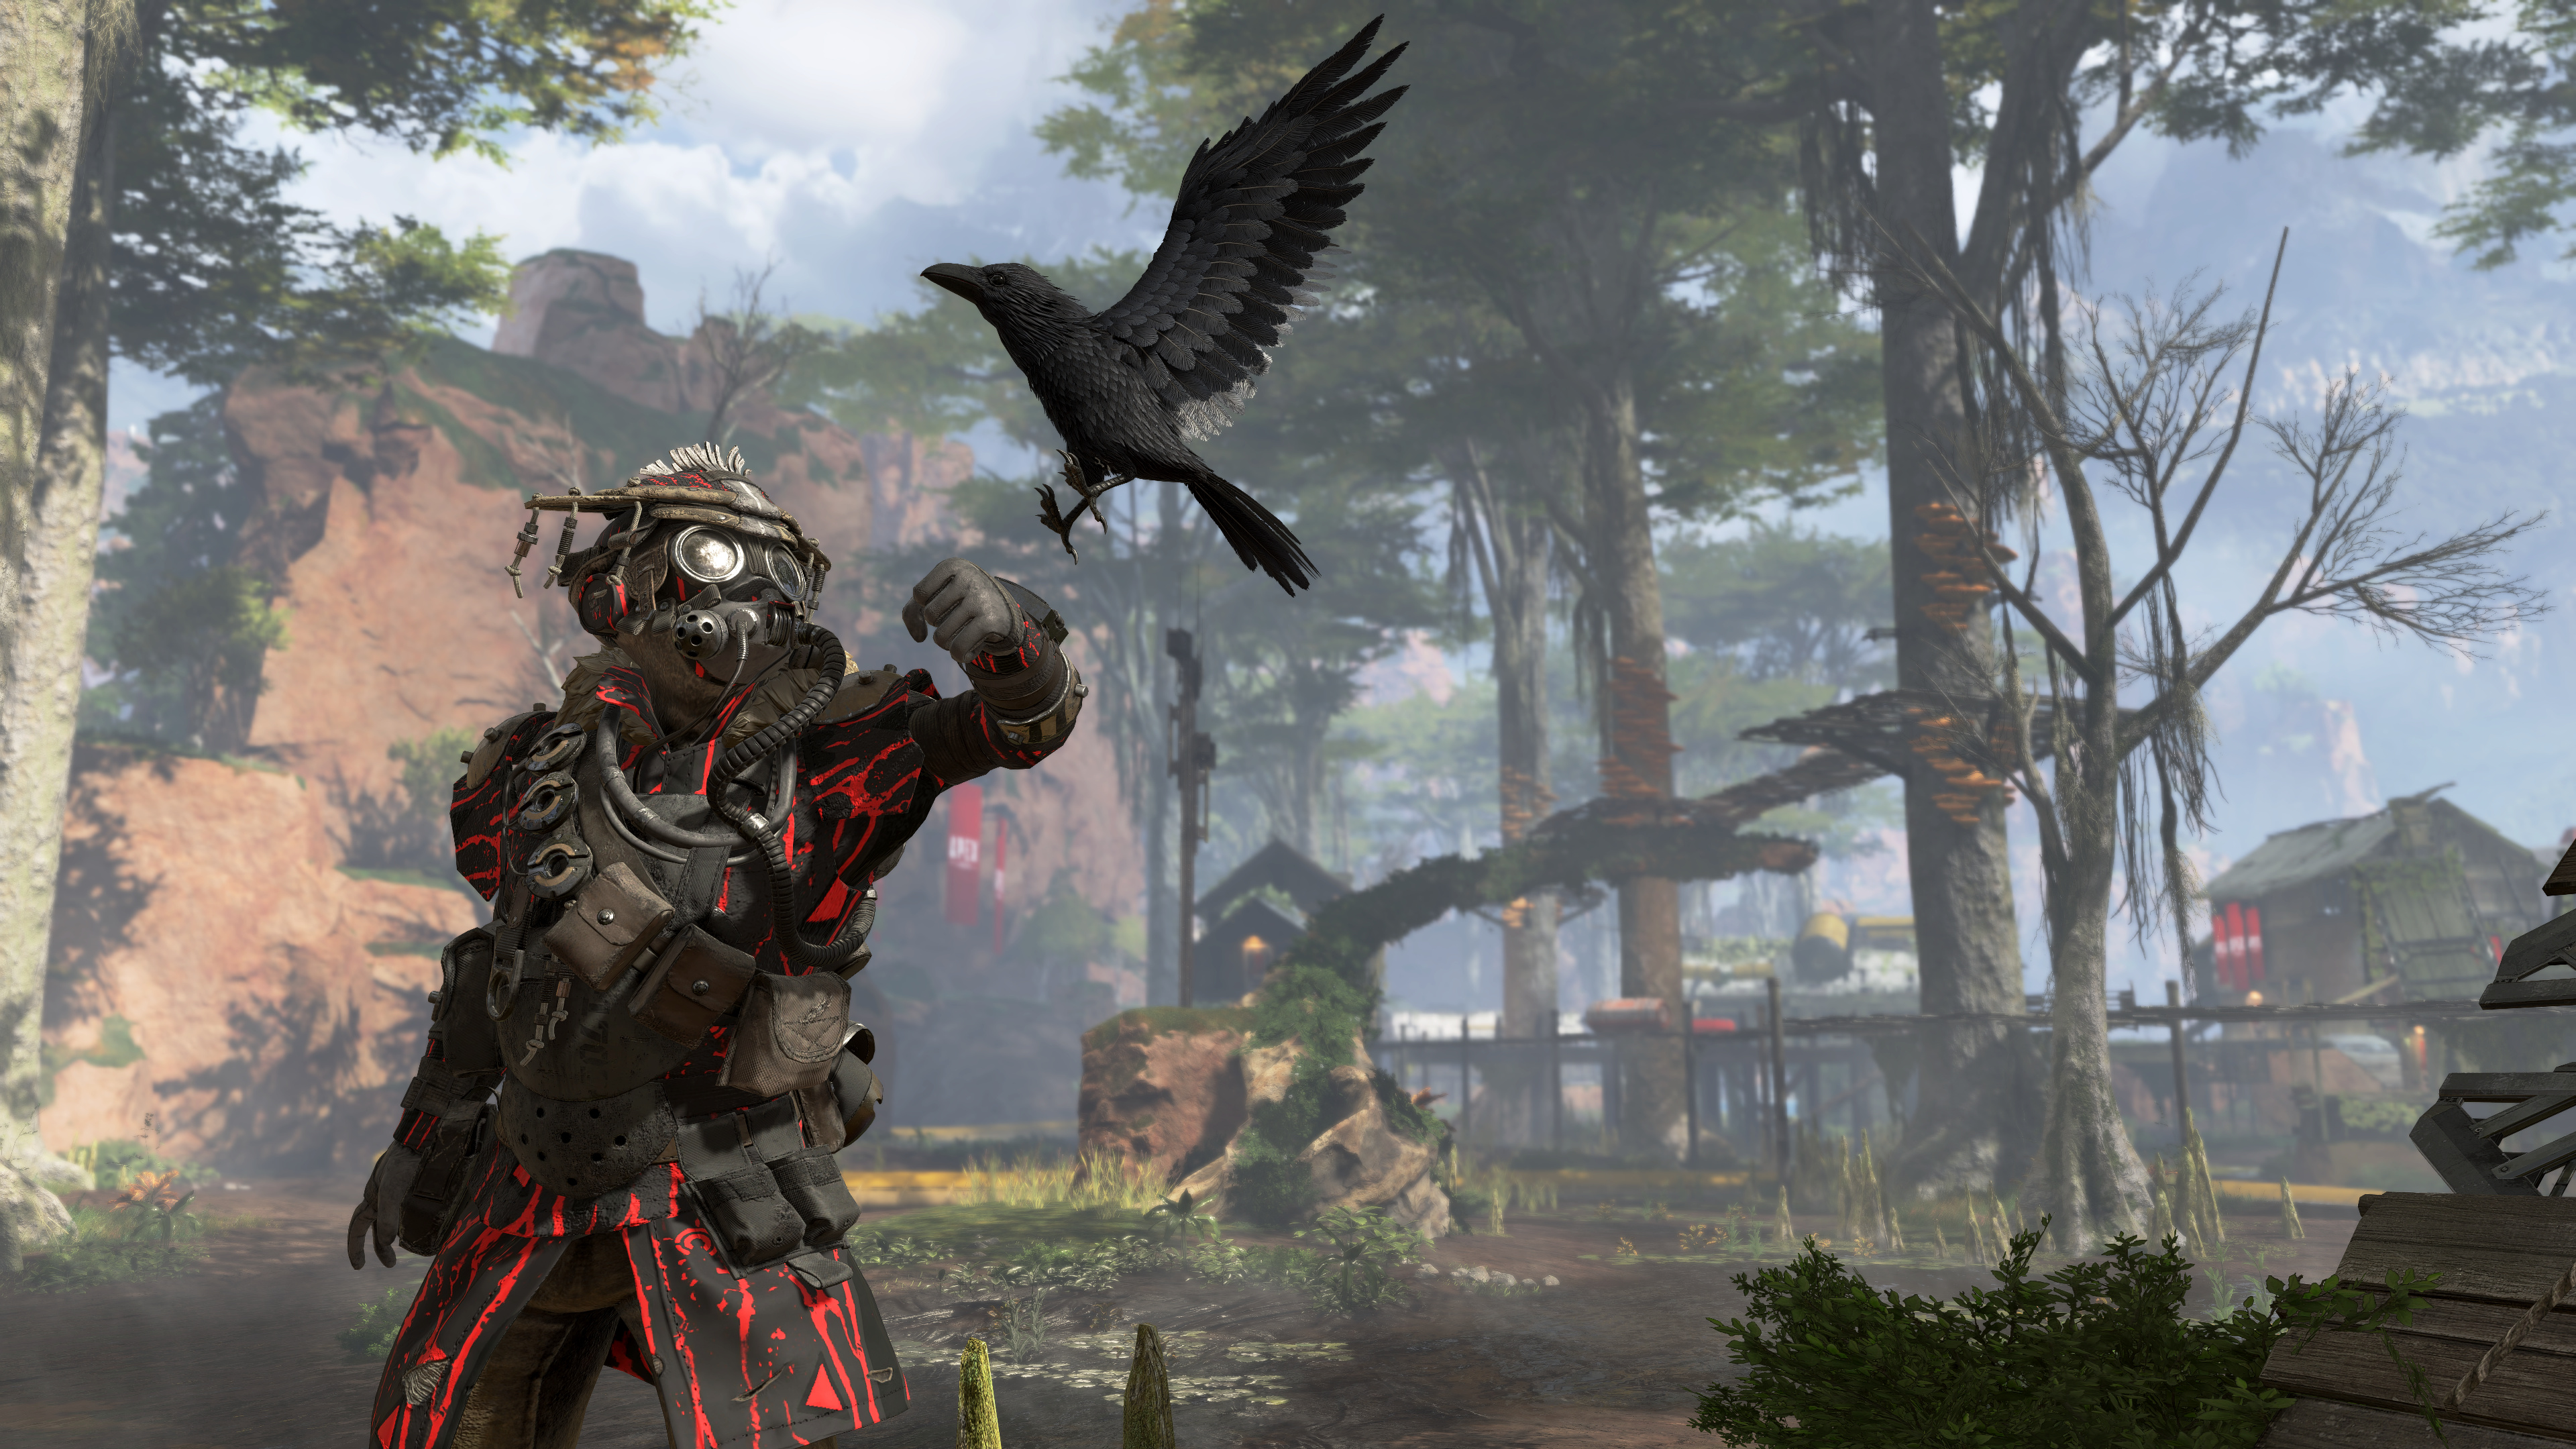 Nueva comparativa gráfica de Apex Legends entre PC y consolas